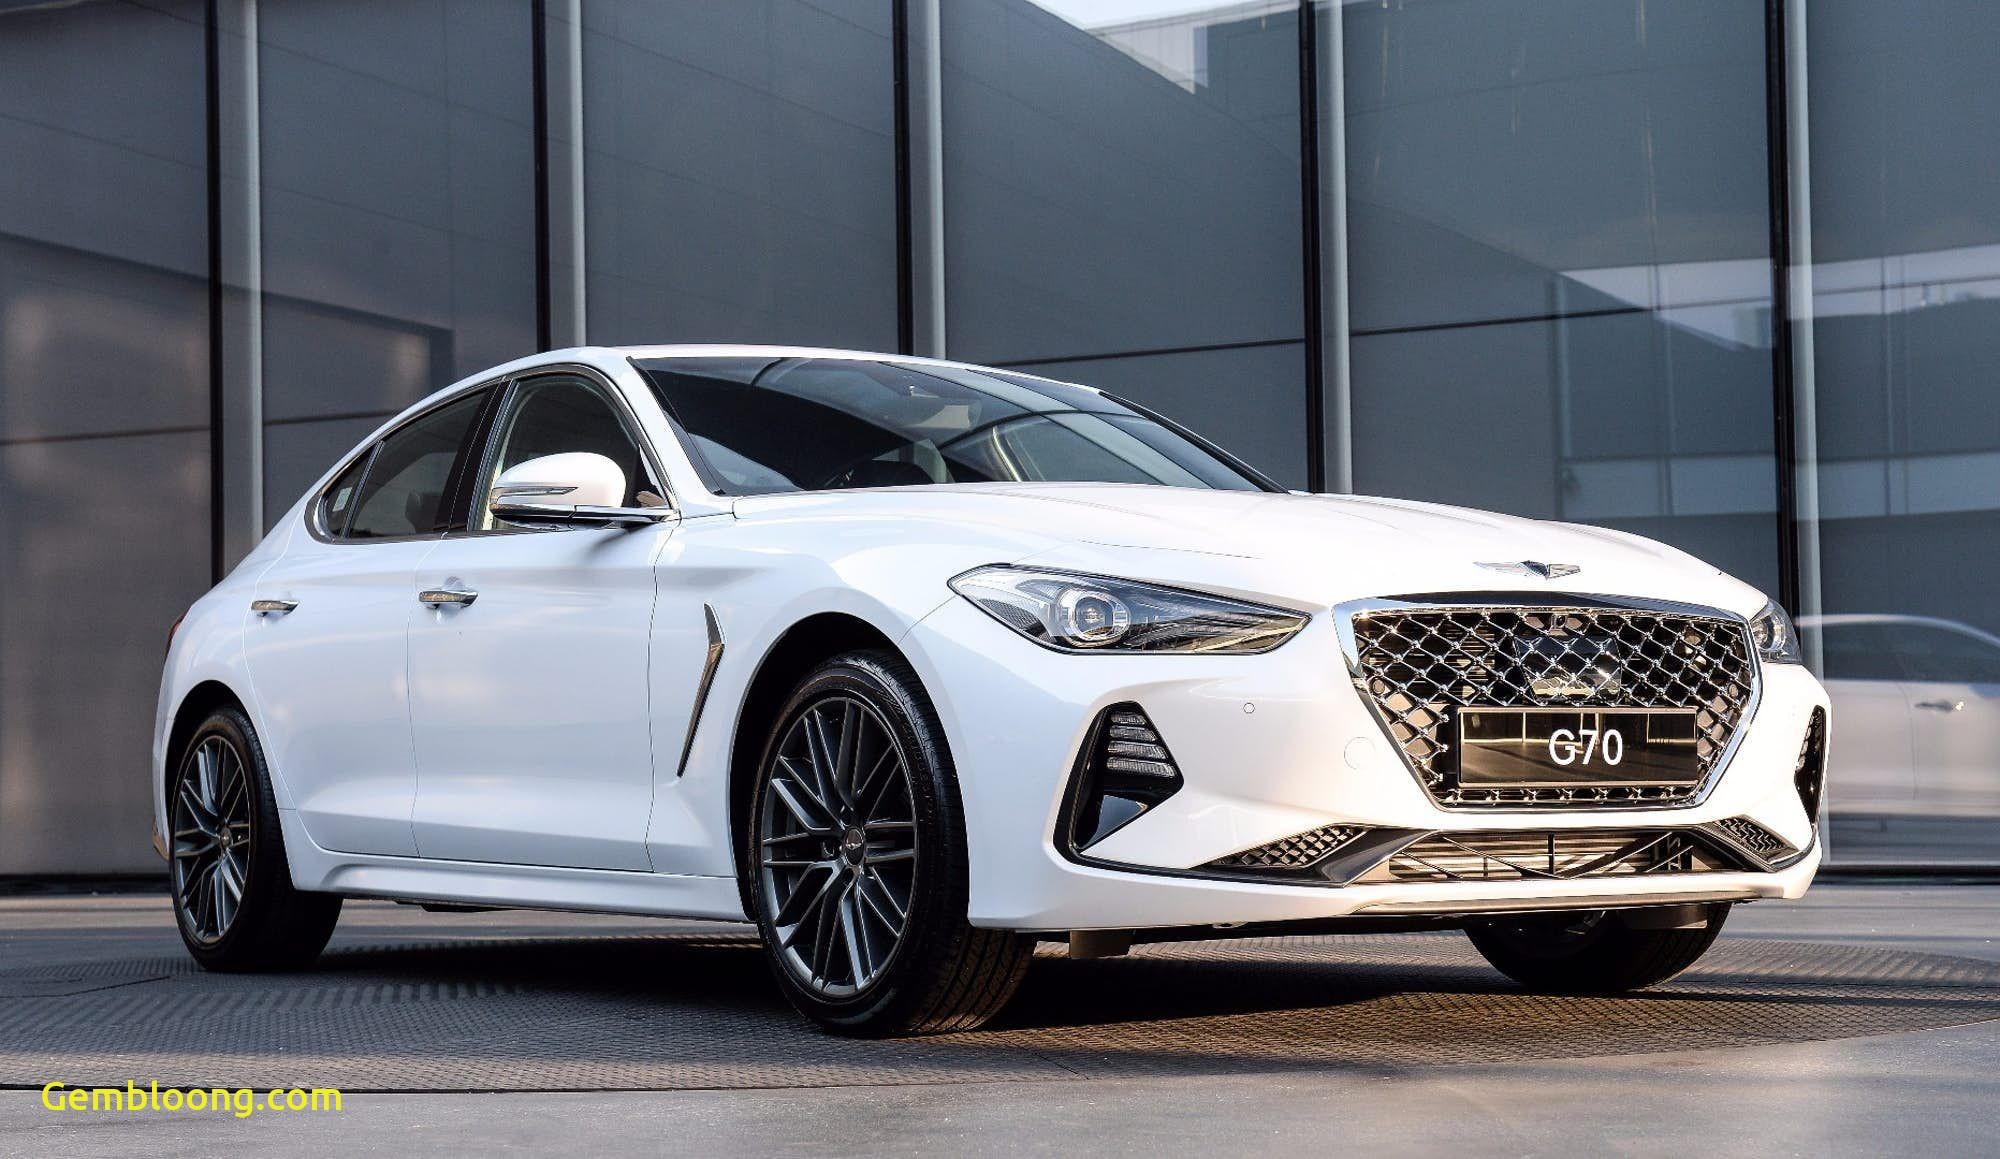 Genesis Coupe for Sale Lovely Hyundai Puts Luxury Spin On the Stinger with Genesis G70